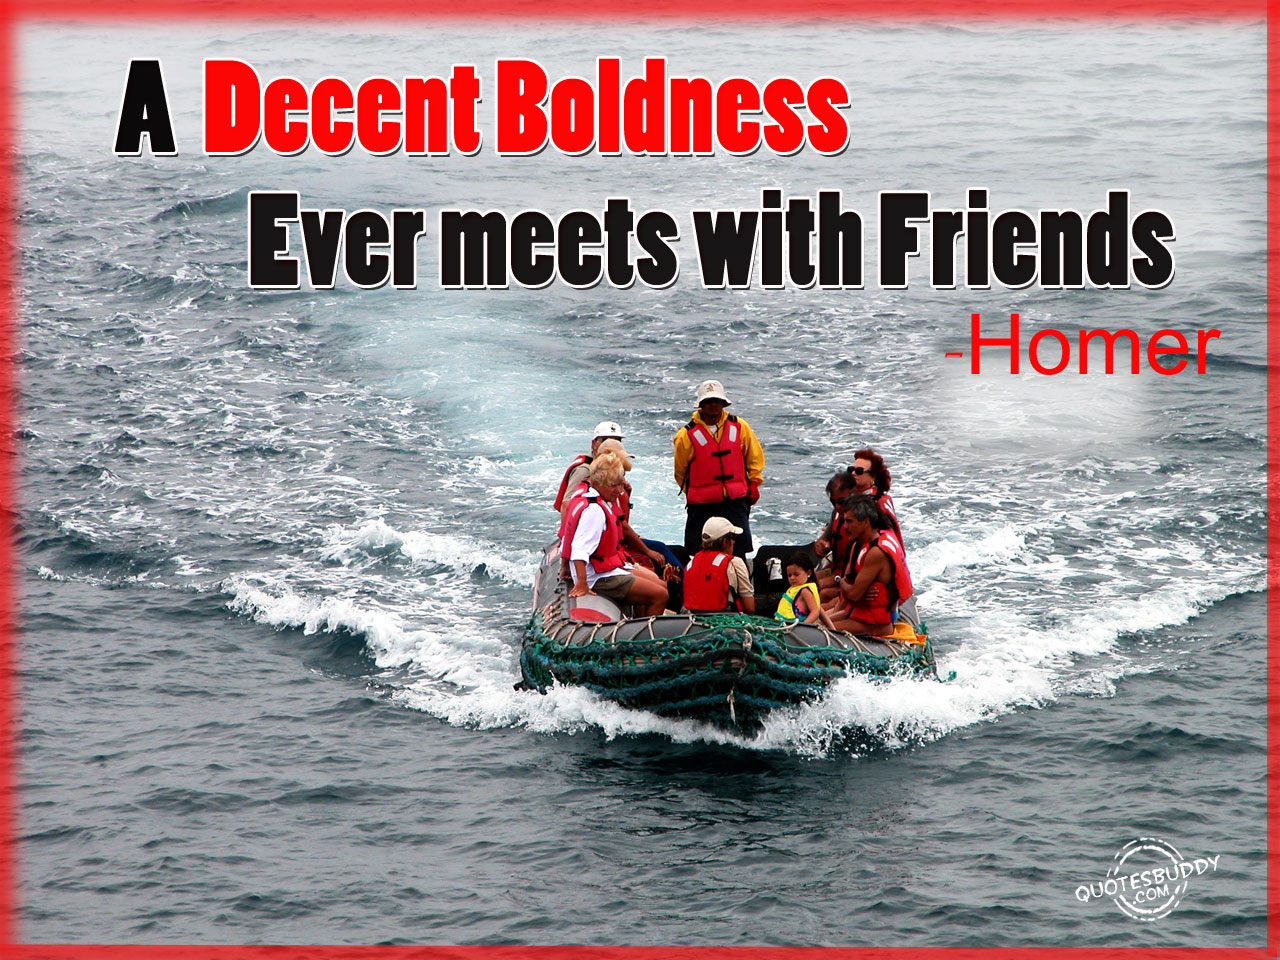 A decent boldness ever meets with friends. Homer